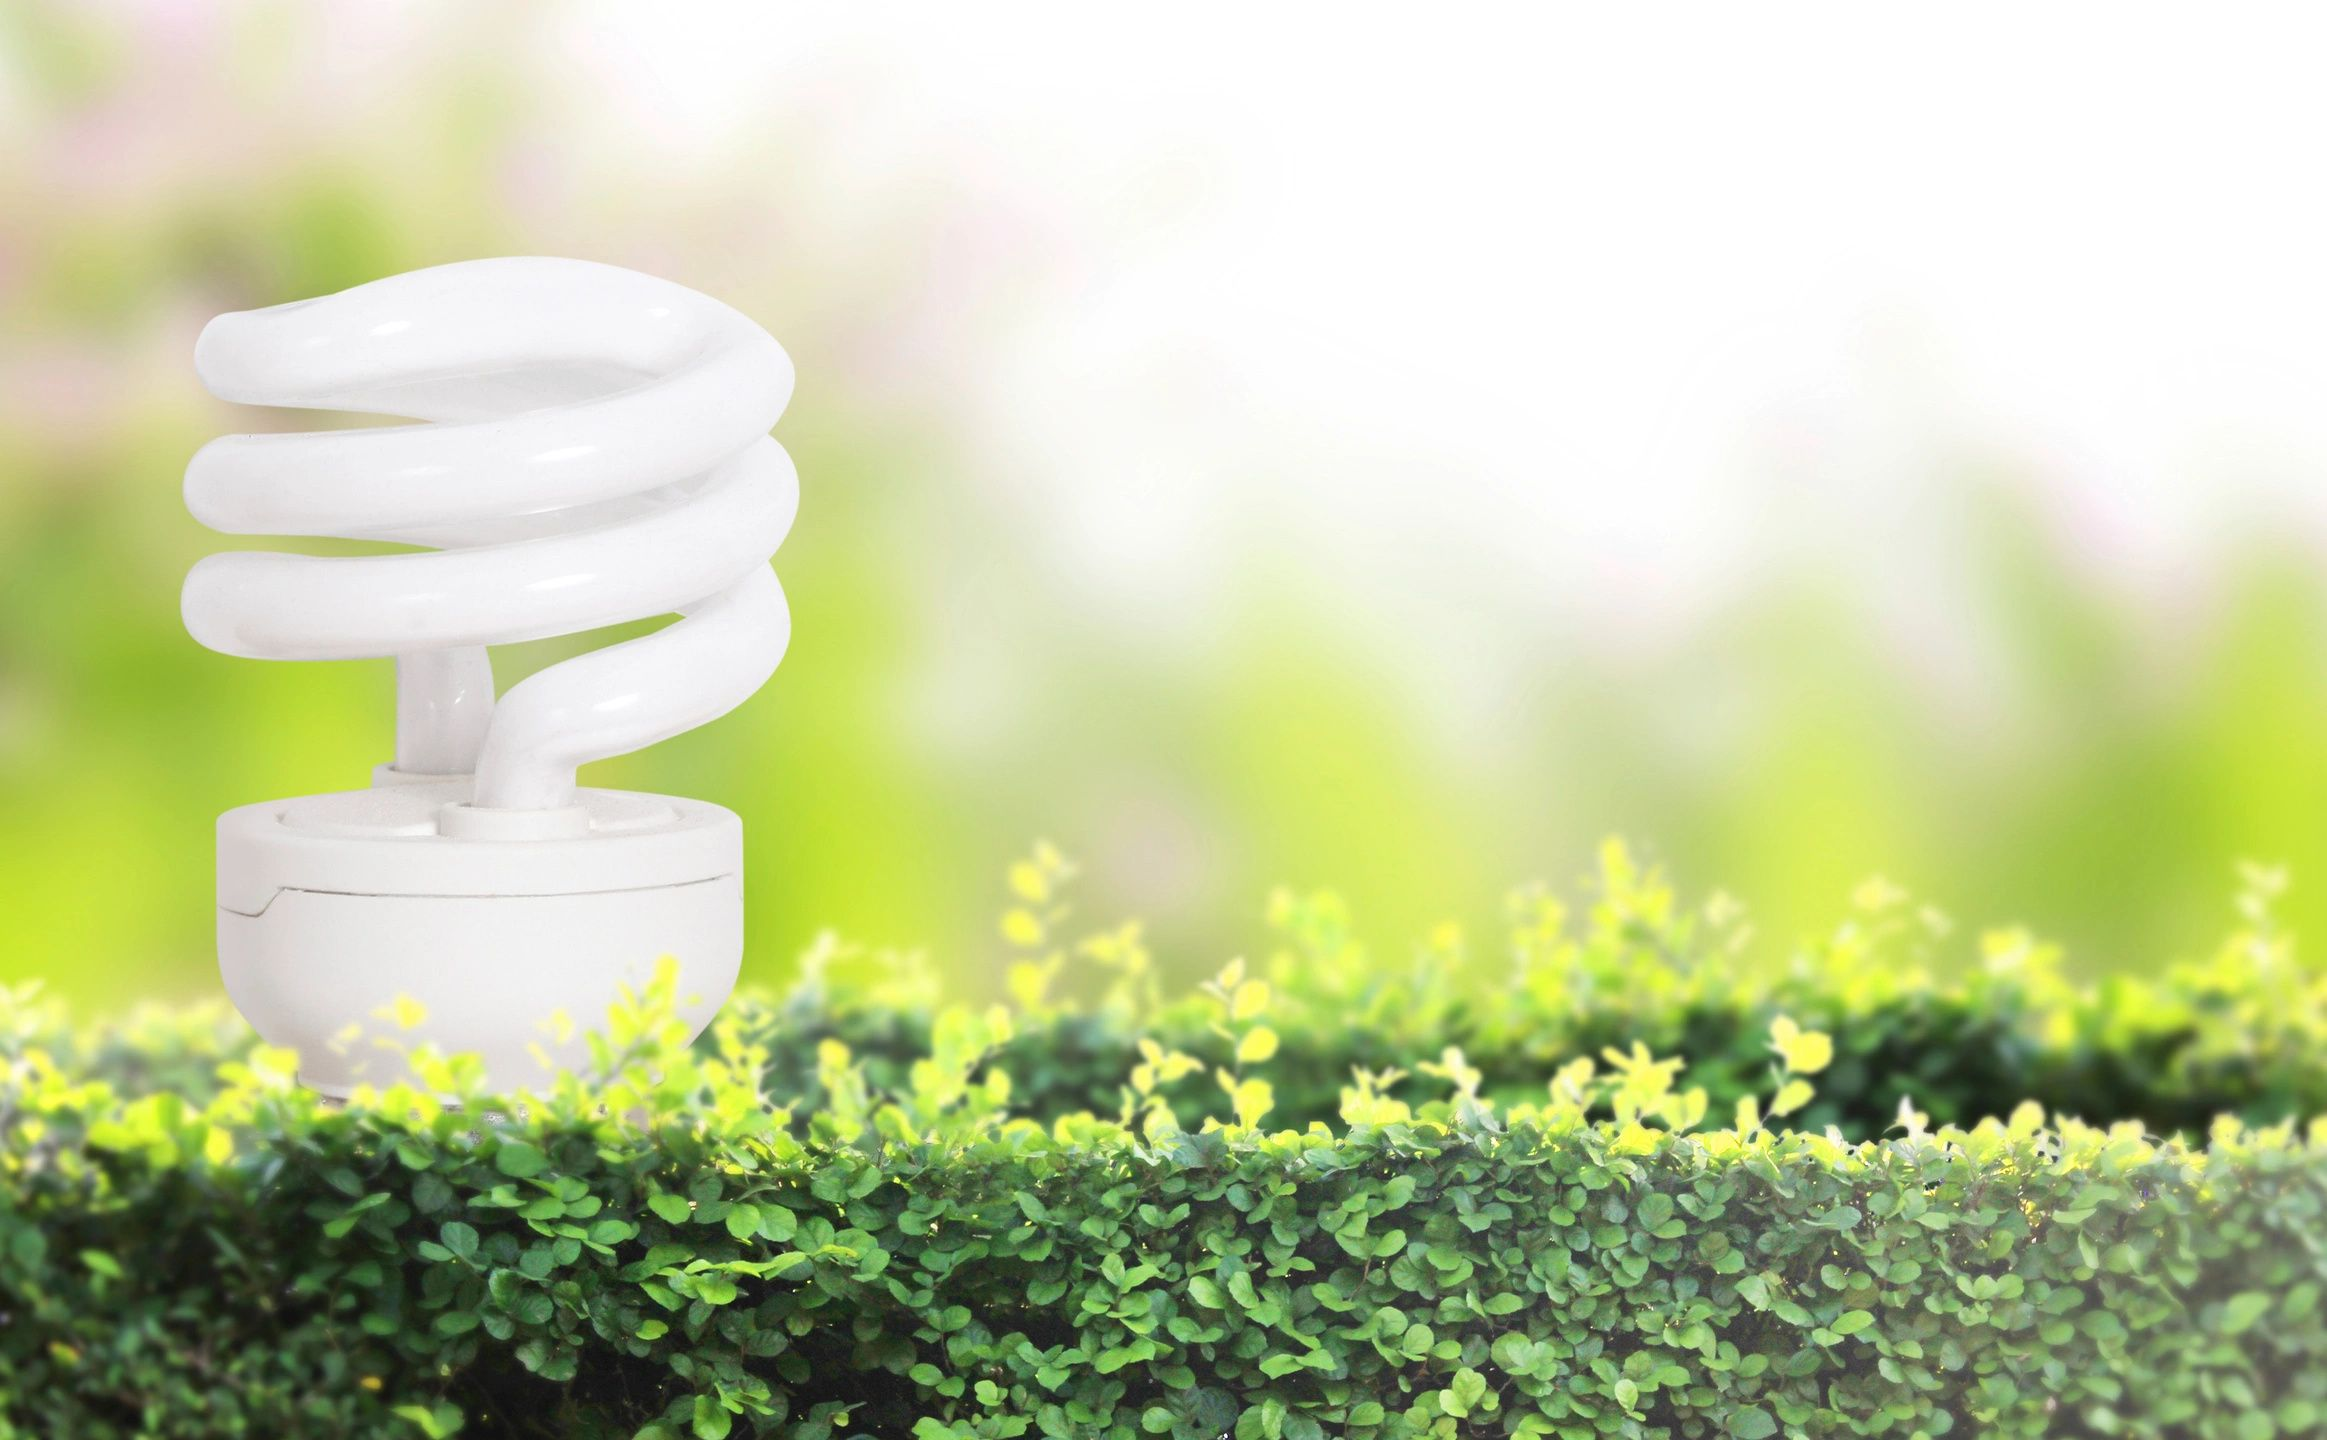 Geothermal Green Energy Lightbulb